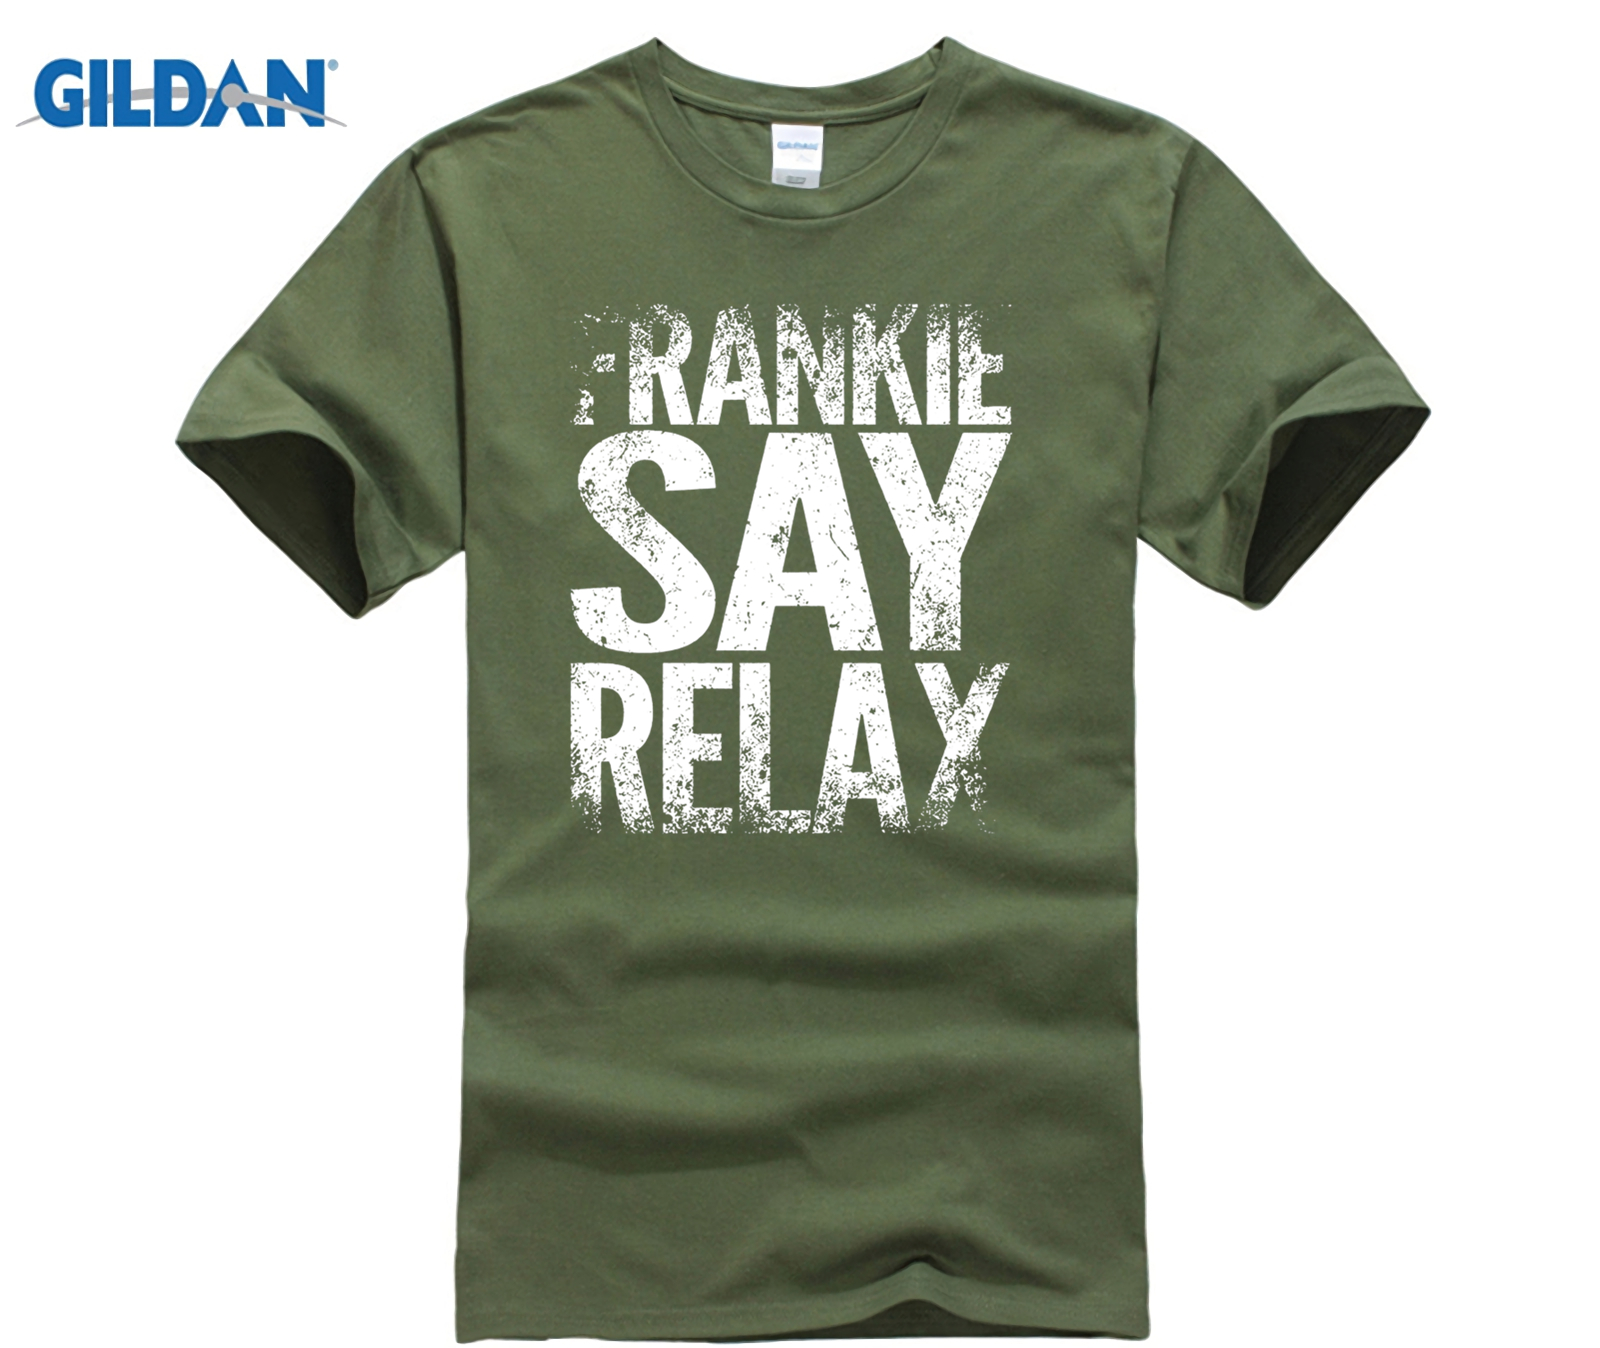 GILDAN Frankie Say Relax Vintage Hollywood 80s Music Funny T-Shirt Size S-XXXL summer T-shirt image